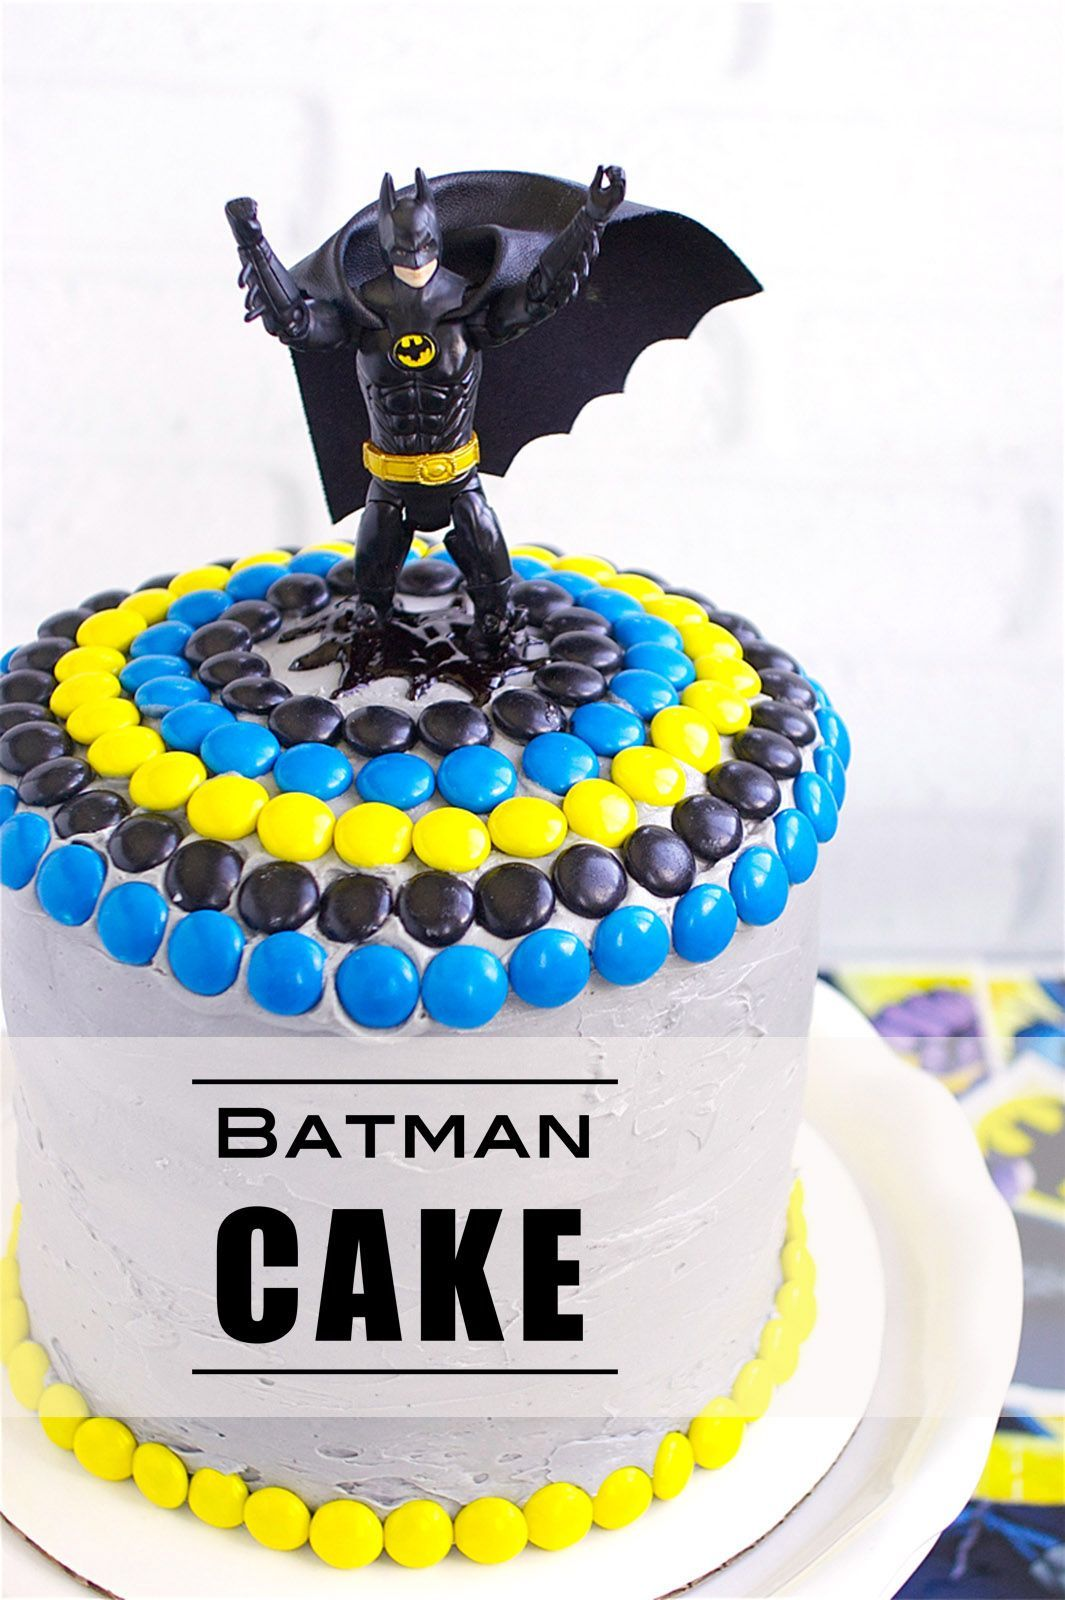 Cake Batman Cake | Deliciously DeclassifiedBatman (disambiguation)  Batman is a fictional superhero appearing in comic books published by DC Comics.   Batman may also refer to: